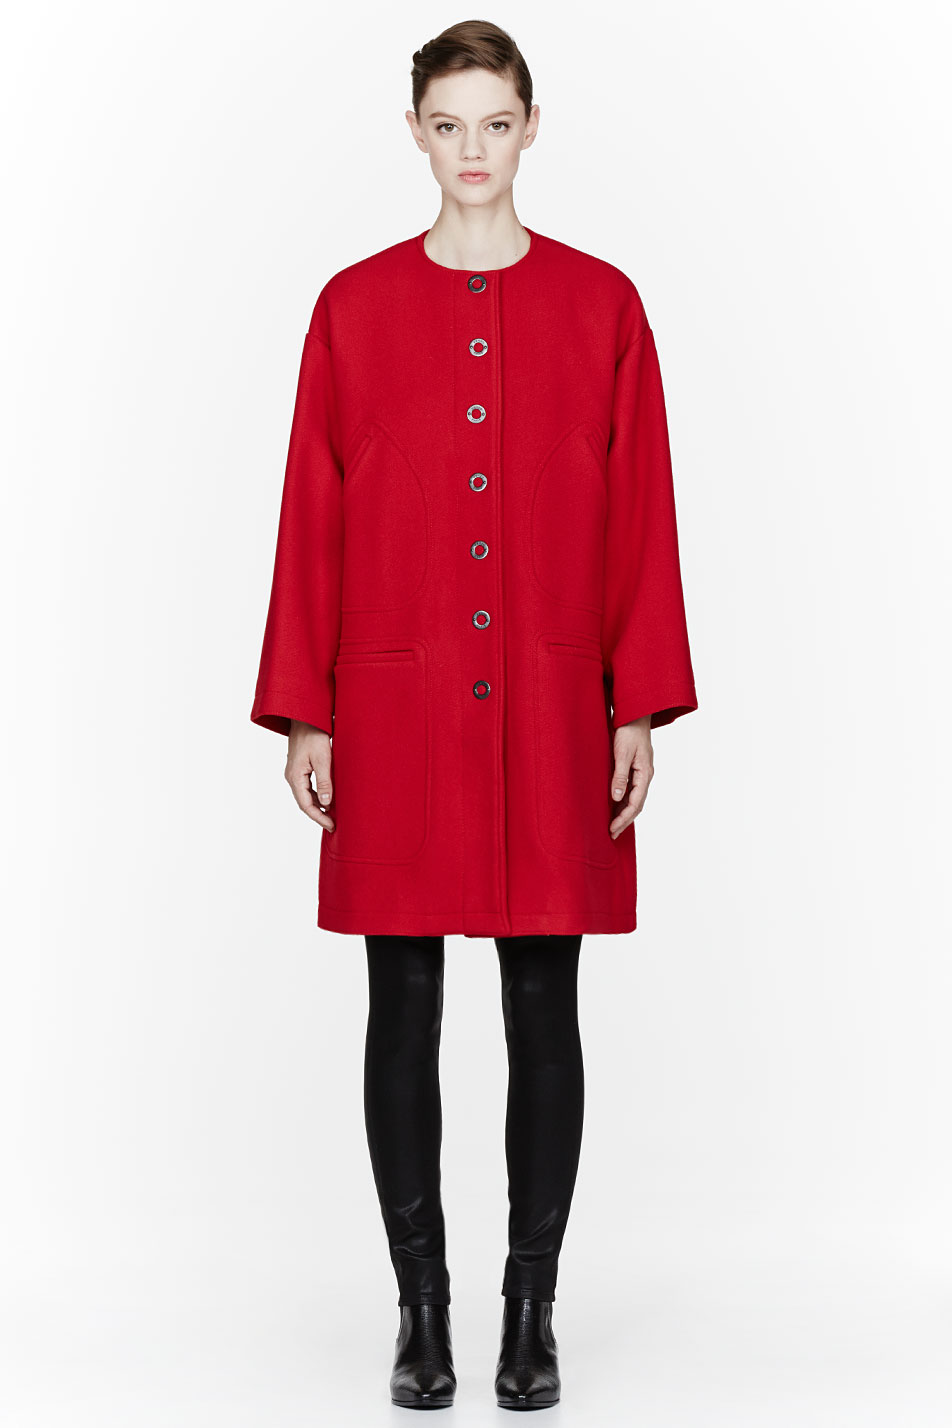 Kenzo Red Oversized Coat in Red | Lyst